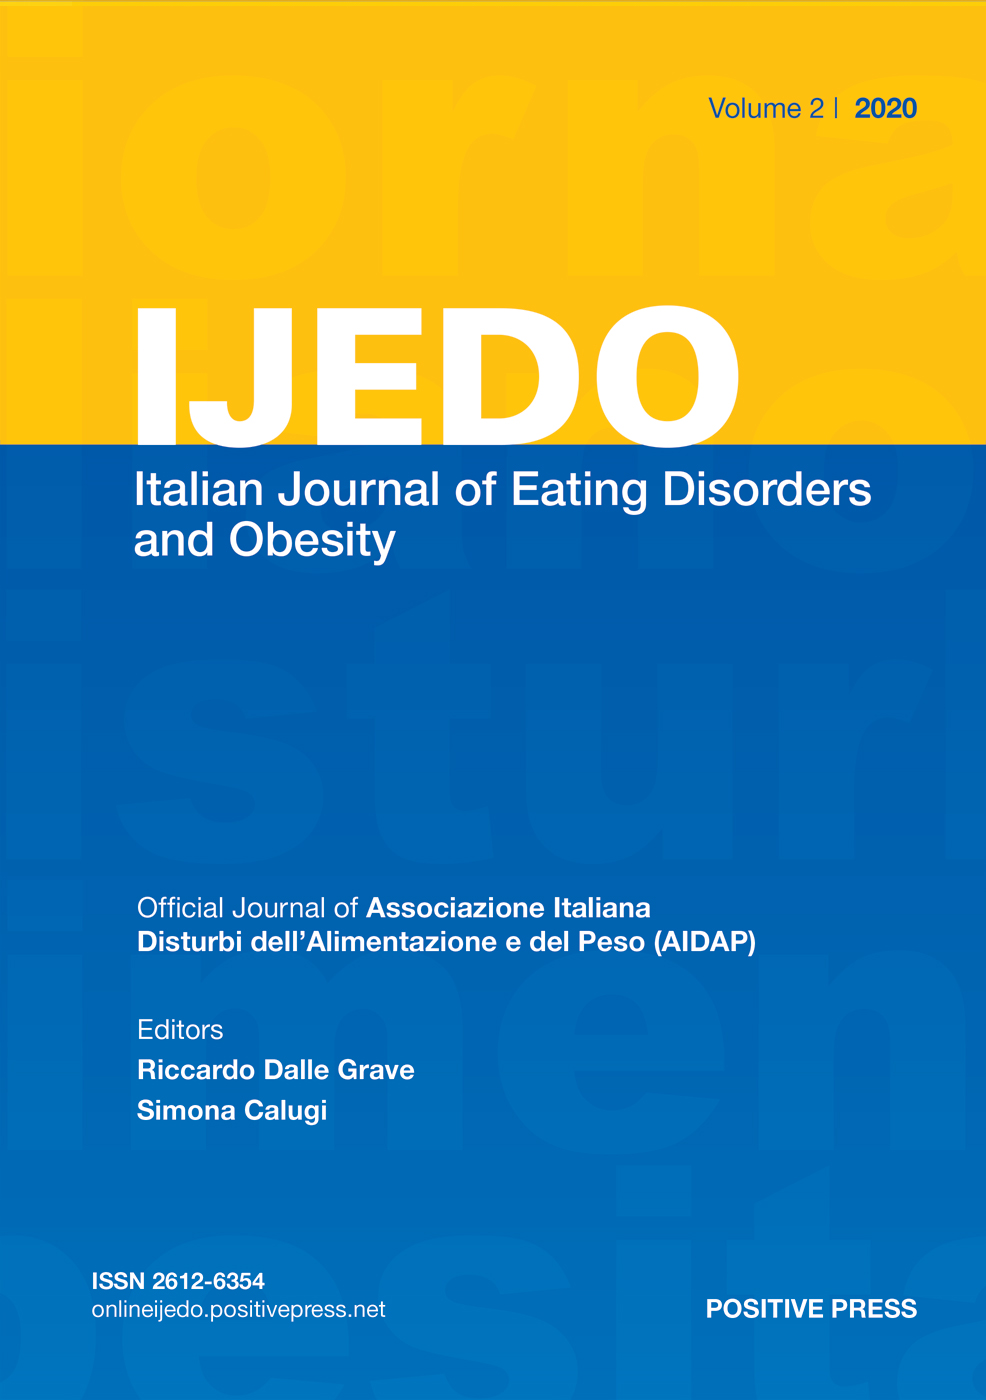 IJEDO Giornale Italiano dei Disturbi dell'Alimentazione e dell'Obesita / Italian Journal of Eating Disorders and Obesity